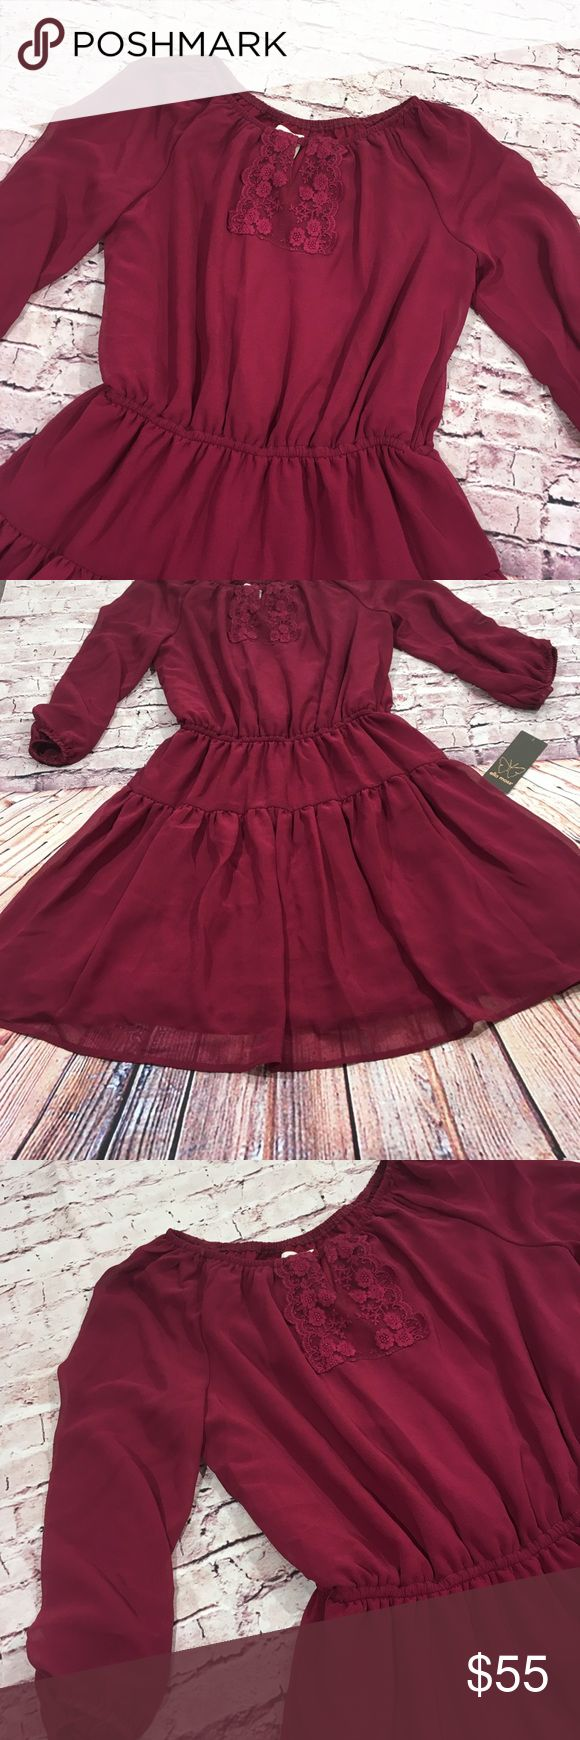 Anthropology Ella Moss Dress NWT Anthropology Ella Moss Peasant Dress Size 14 (Small) NWT Burgundy Wine Color 100% Polyester Sheer w/dress liner attached Elastic waist band Ella Moss Dresses Midi